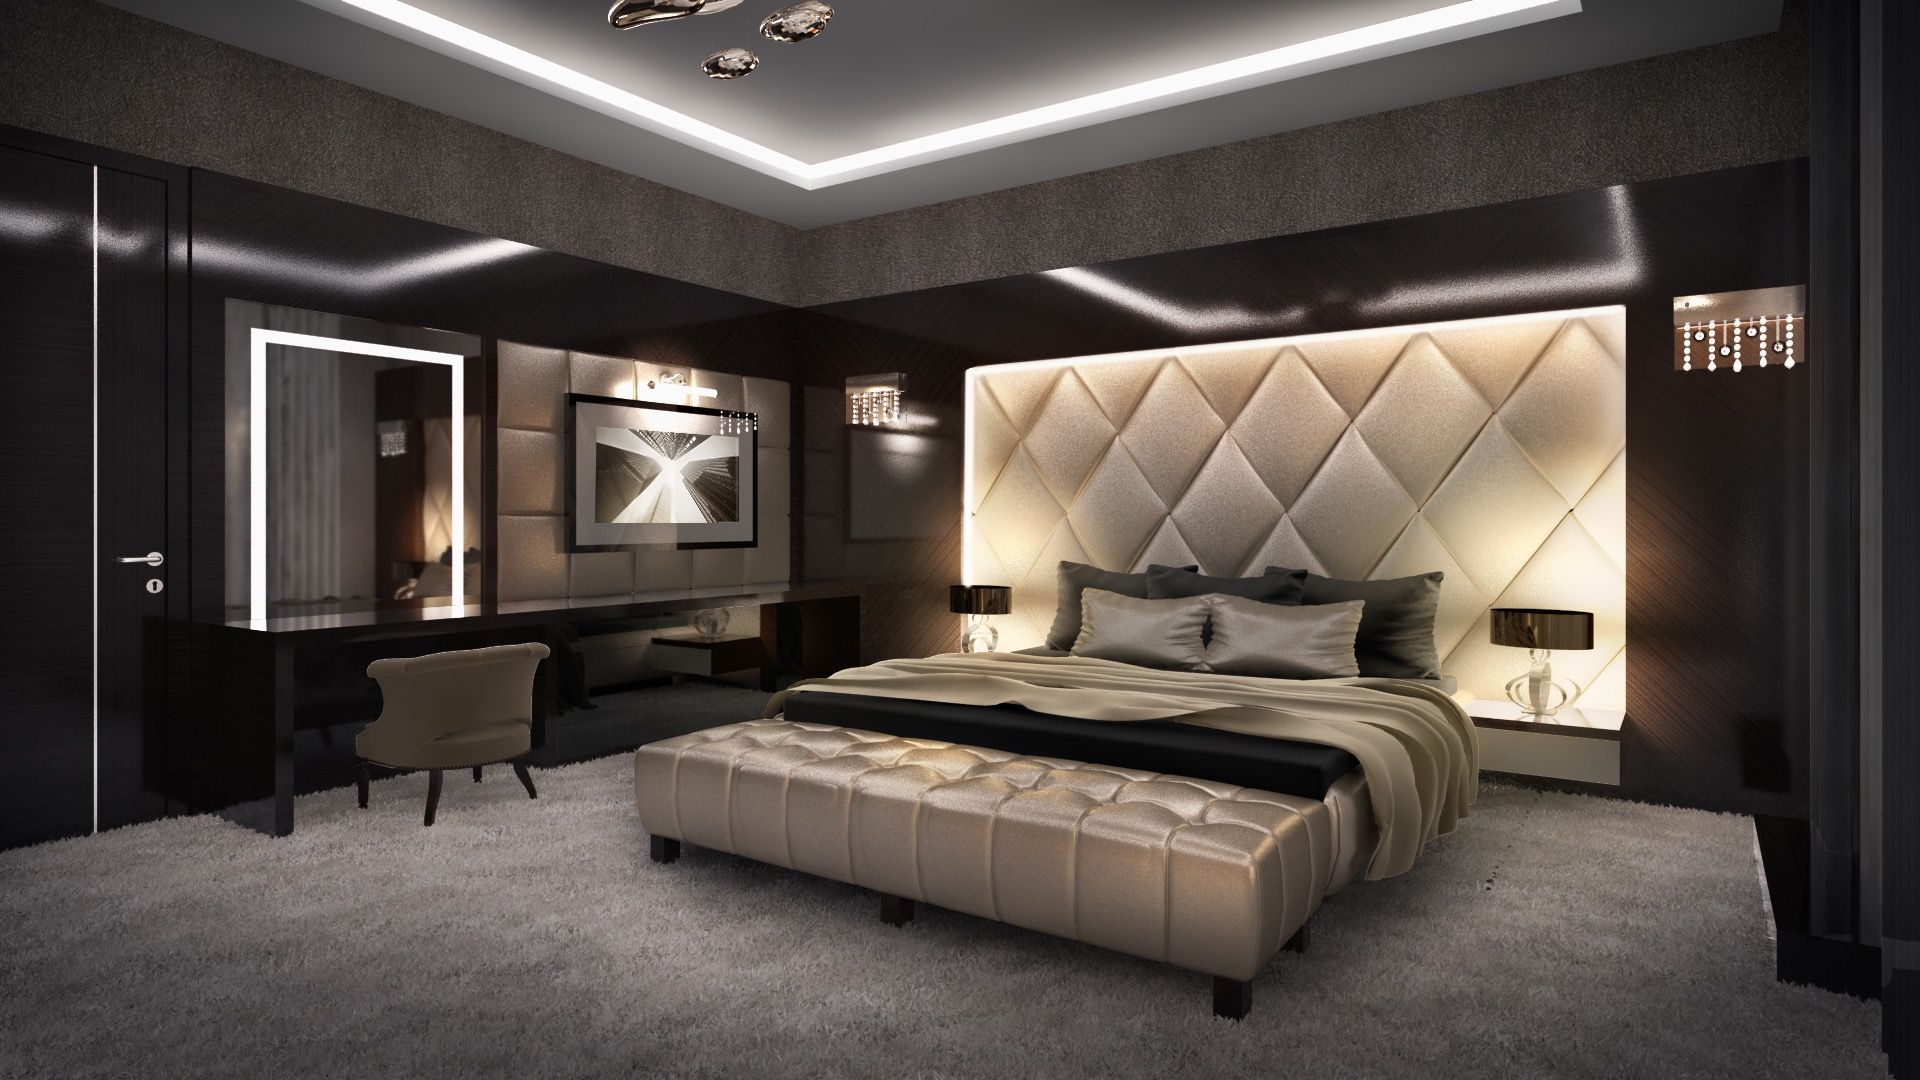 Find Today The Perfect Lighting Fixture For Your Interior Design Project Download Our Cat Luxury Bedroom Design Luxury Bedroom Master Modern Bedroom Interior